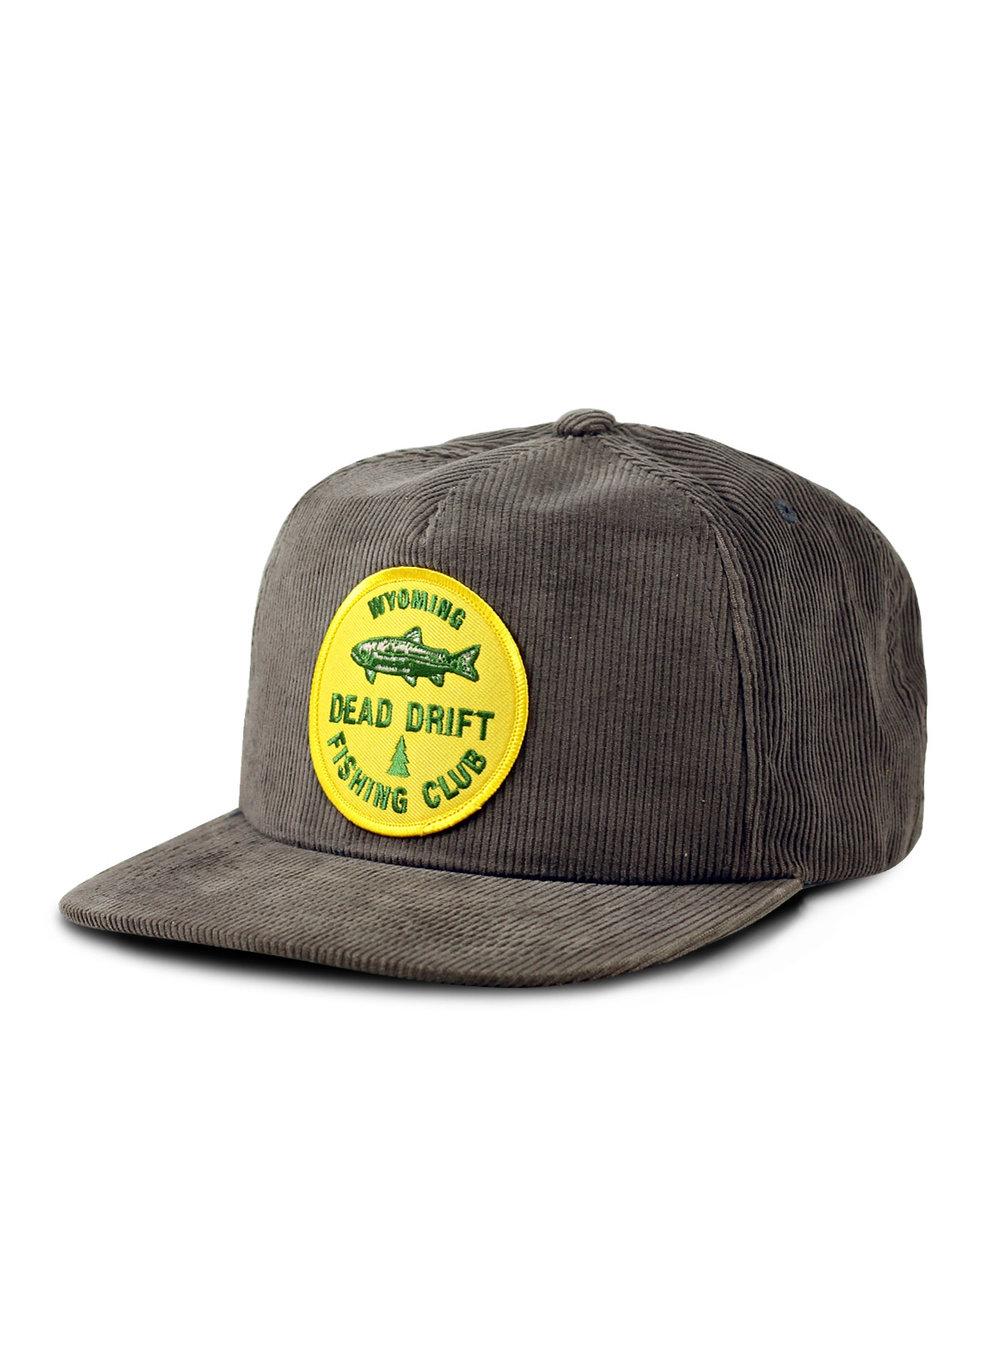 Dead drift fly fishing club corduroy dead drift for Long bill fishing hat